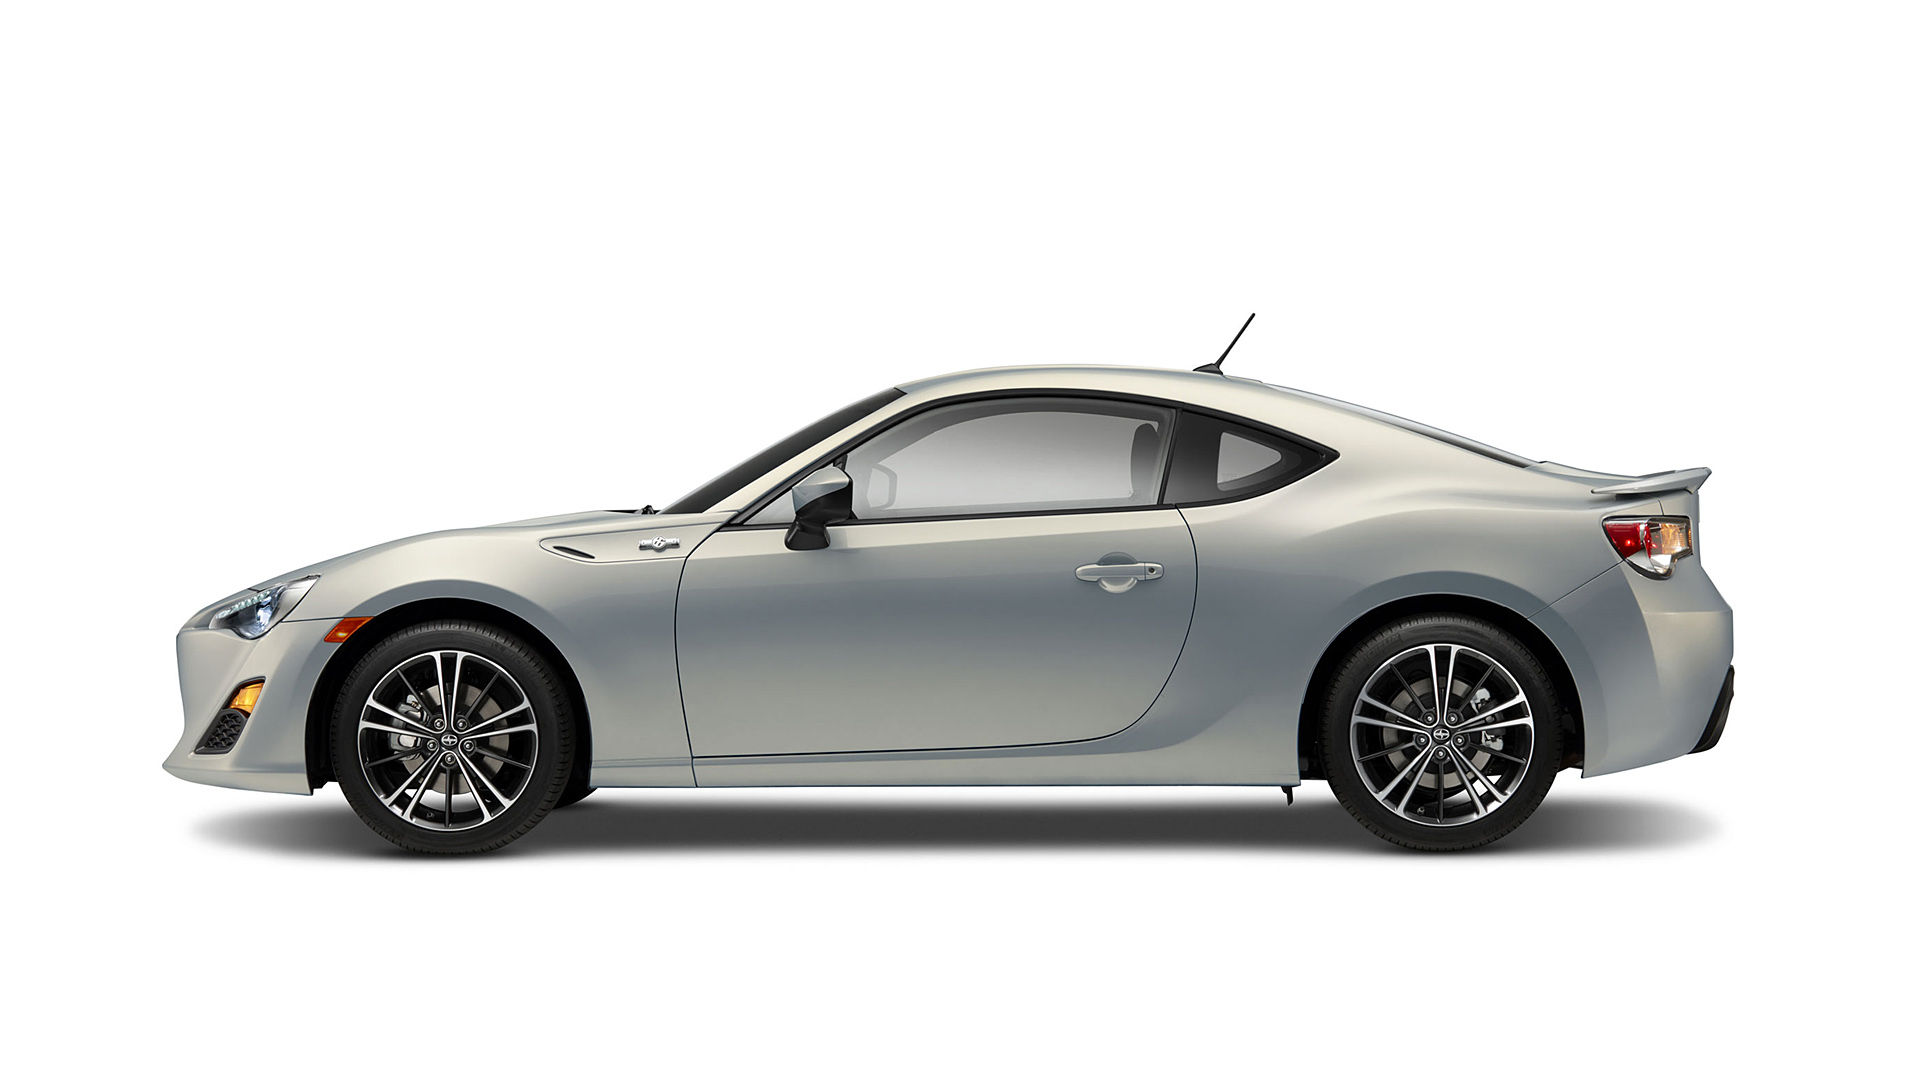 2014 Scion FR-S 10 Series